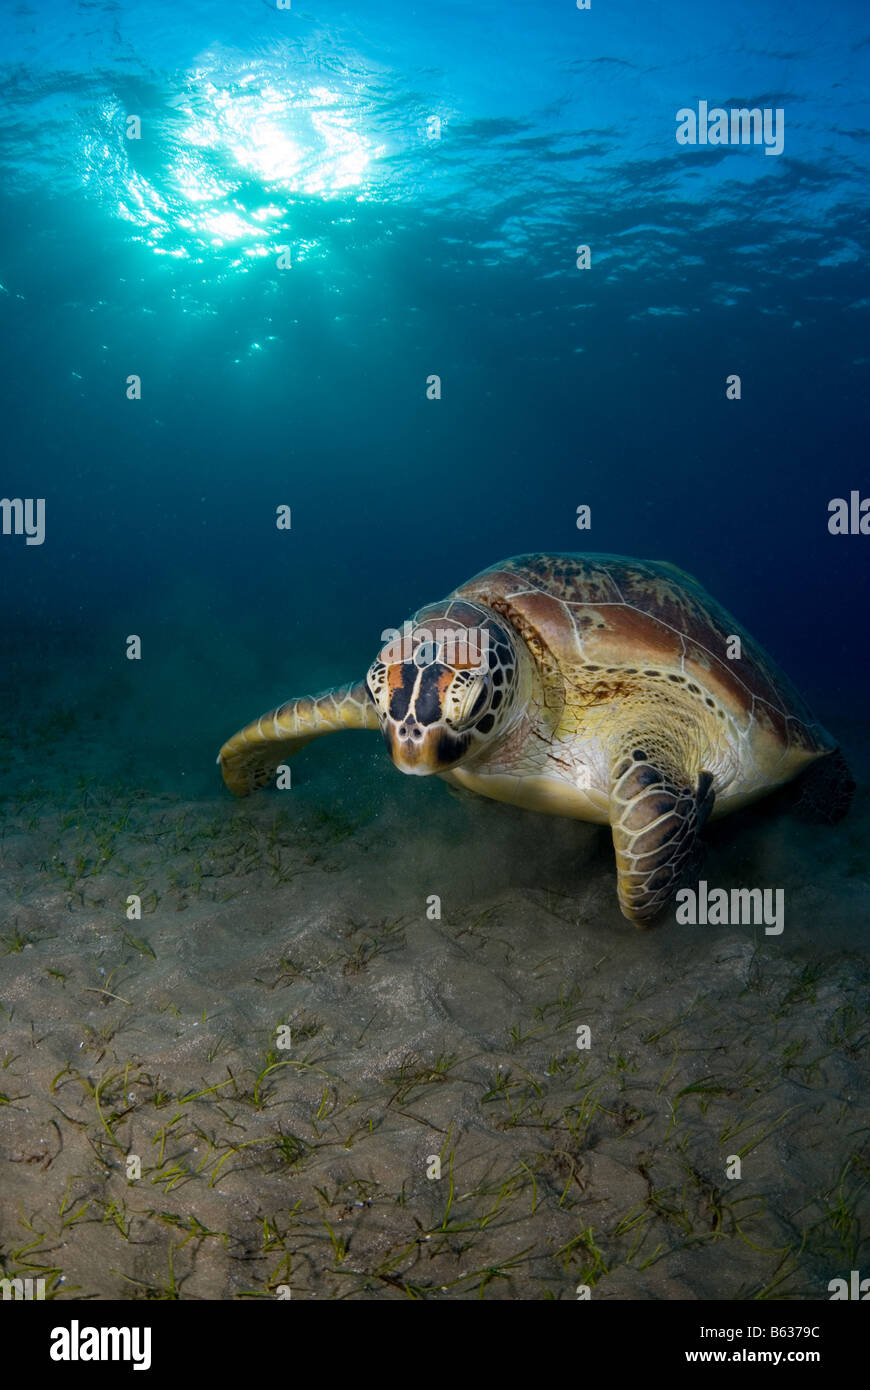 Green sea turtle, chelonia mydas, feeding on the sea grass. - Stock Image